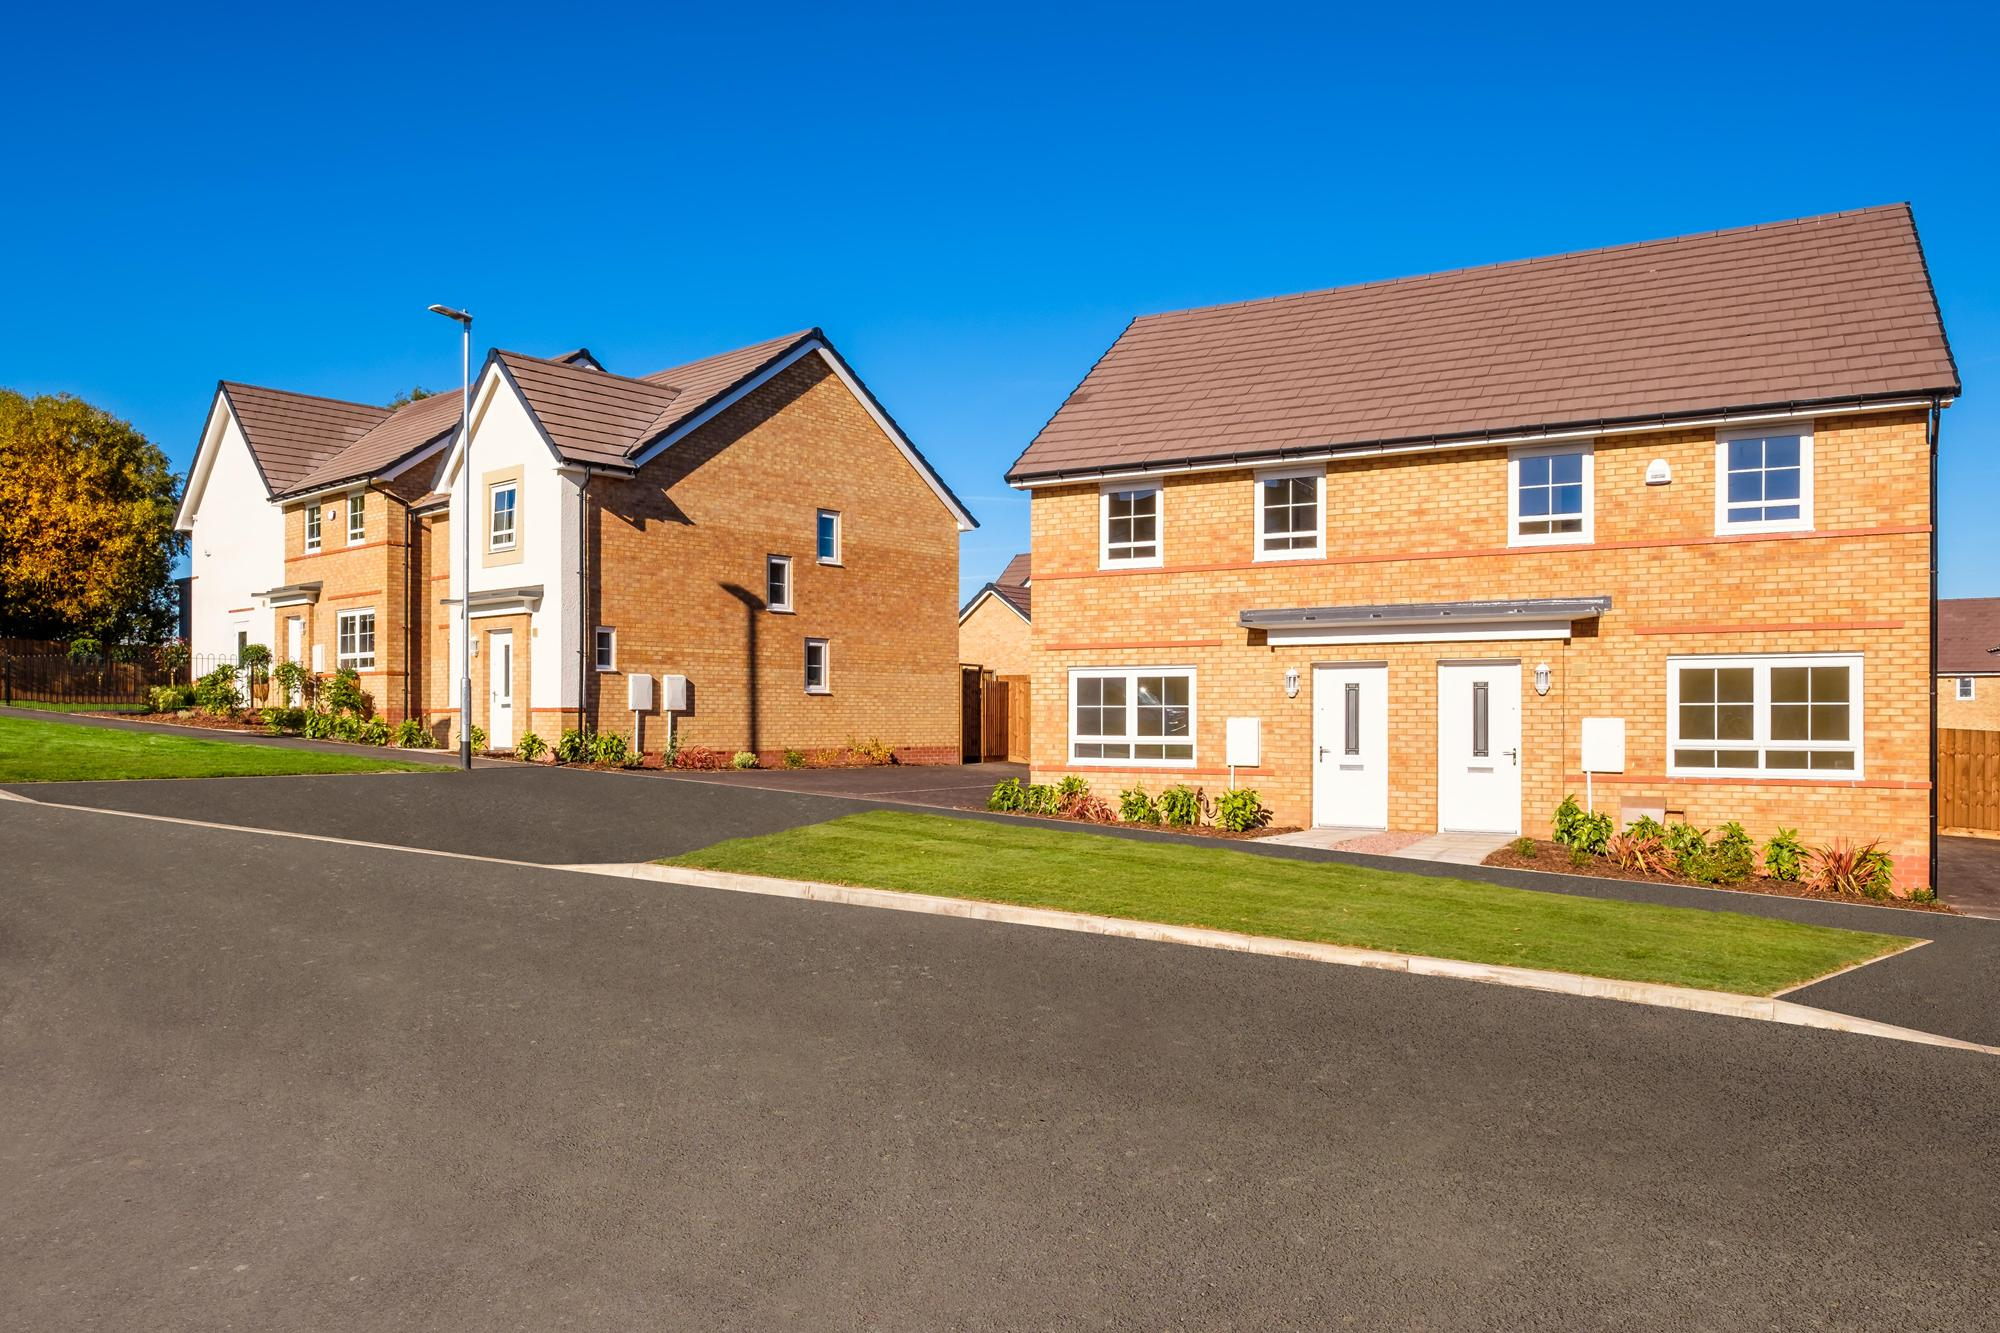 New Build Homes in Hanley